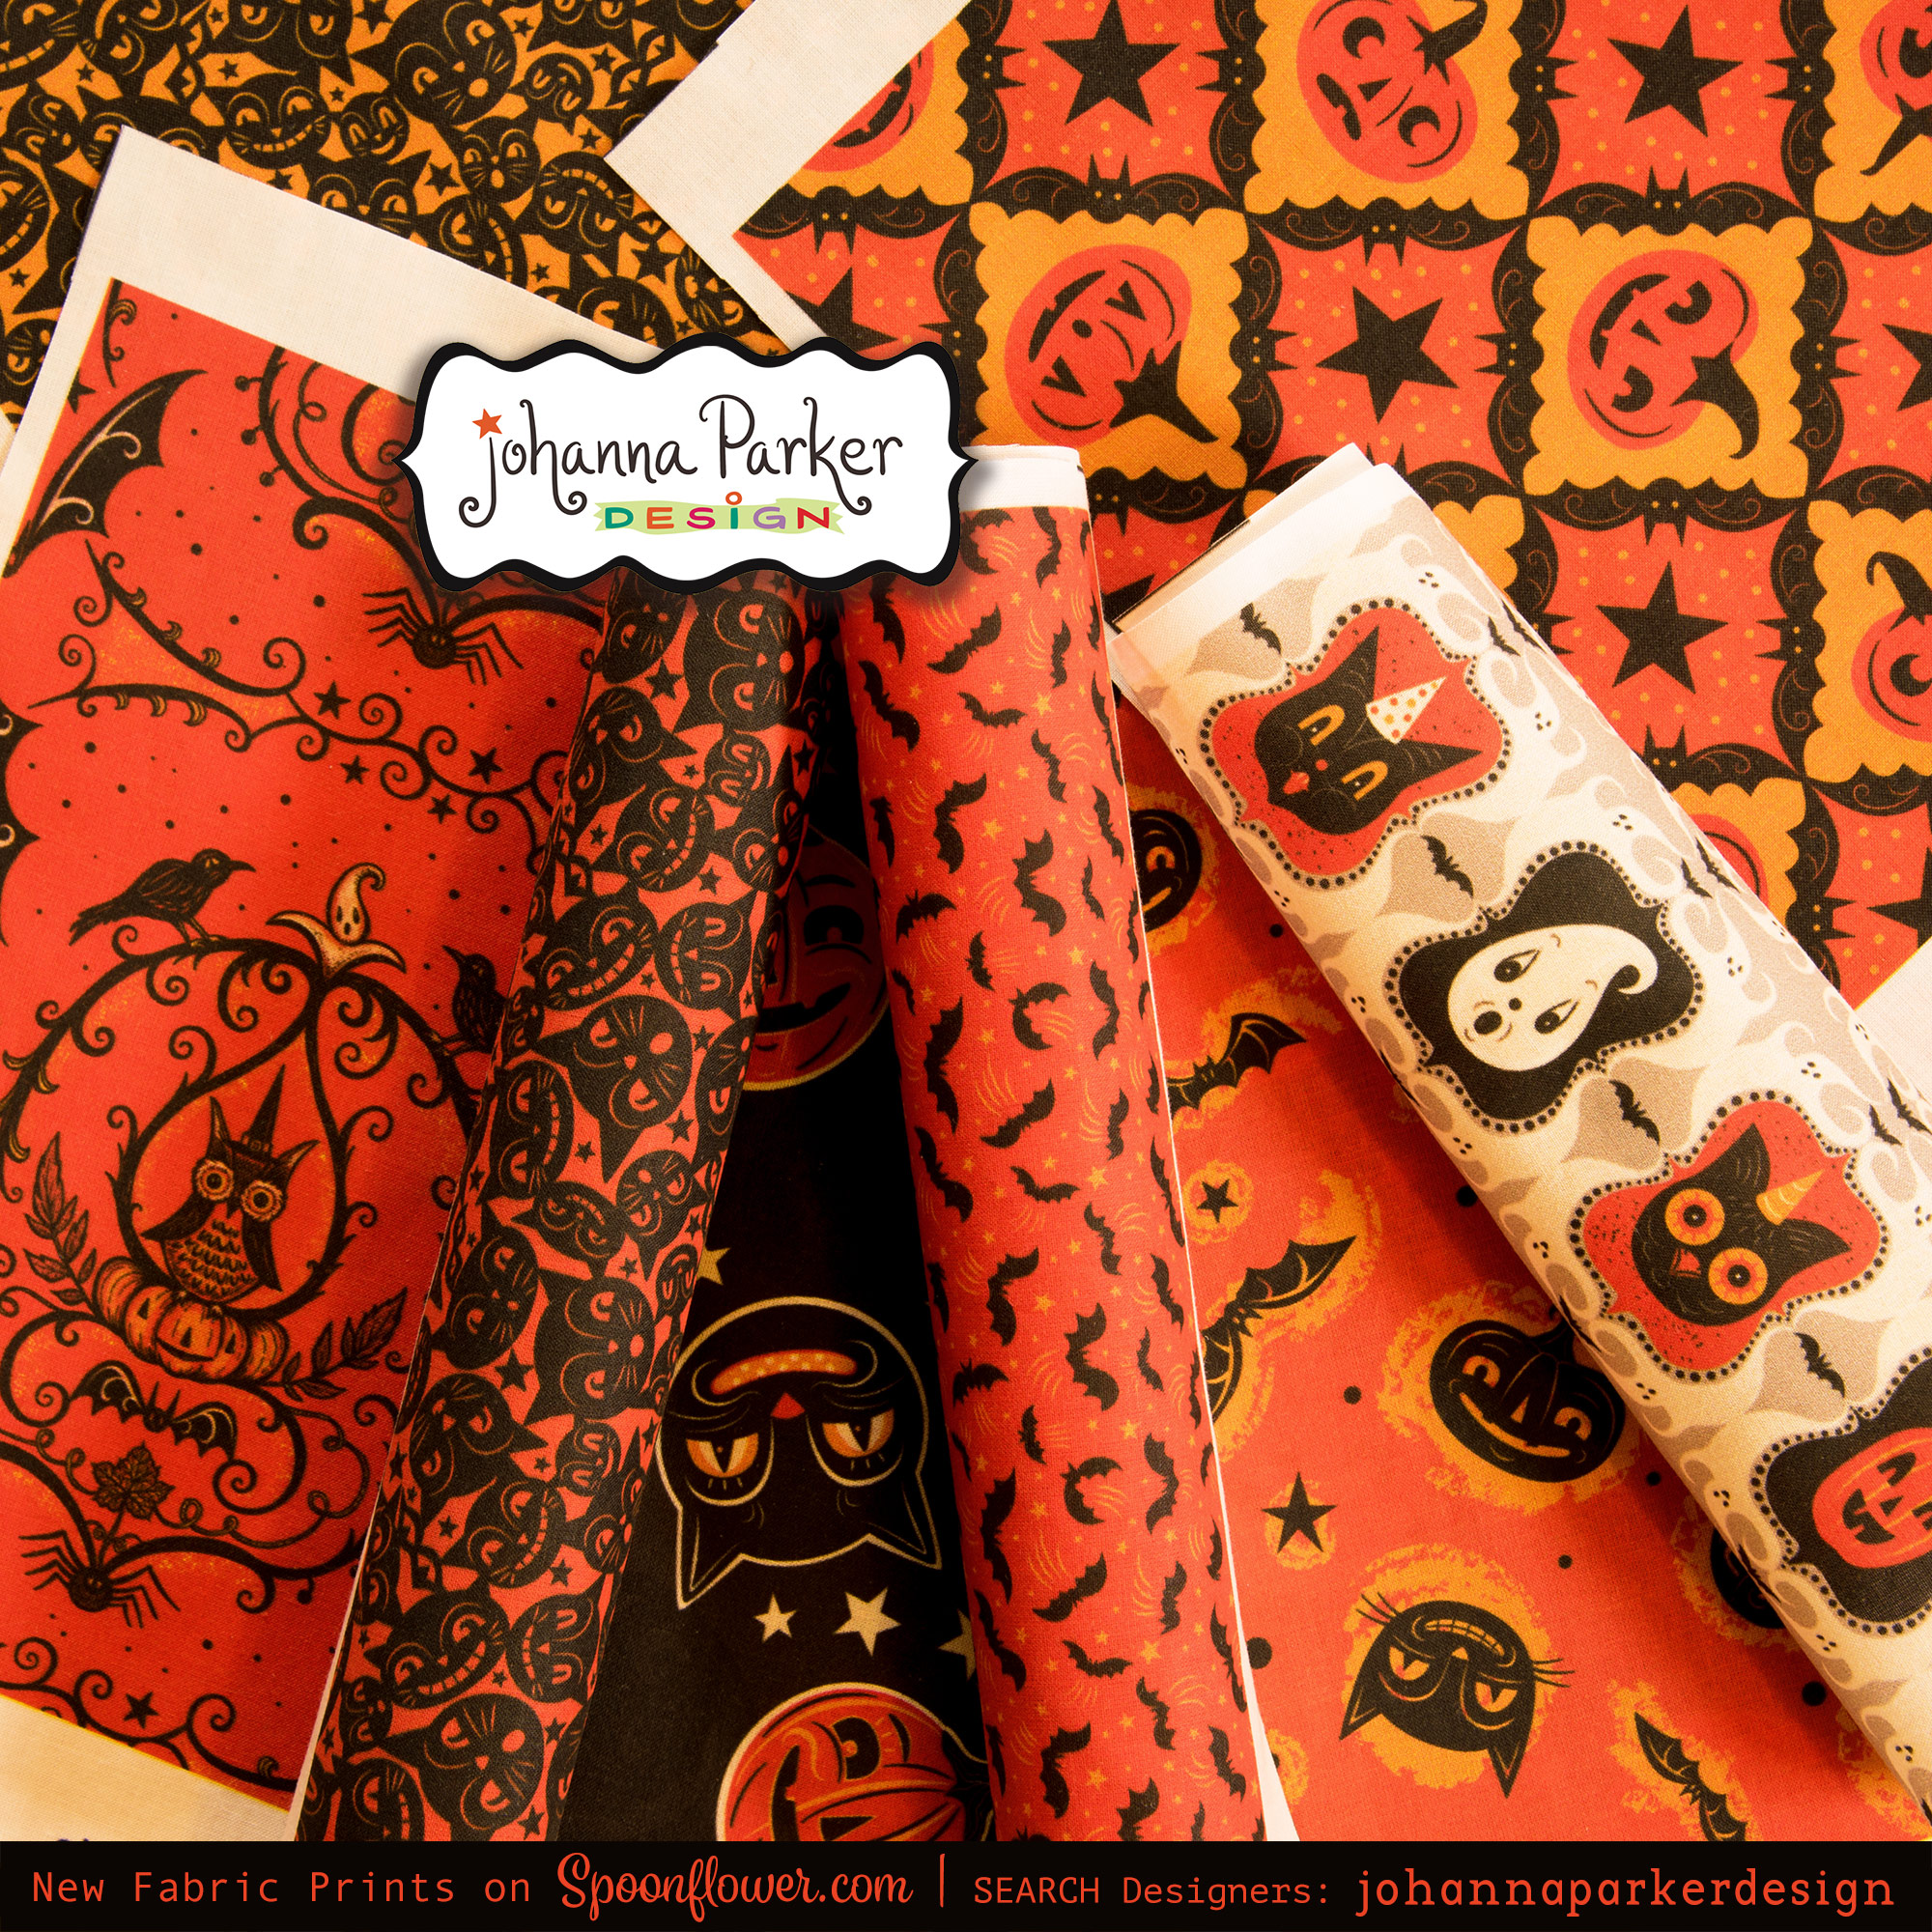 More yummy Halloween Designs, NEW to my  Spoonflower Shop!